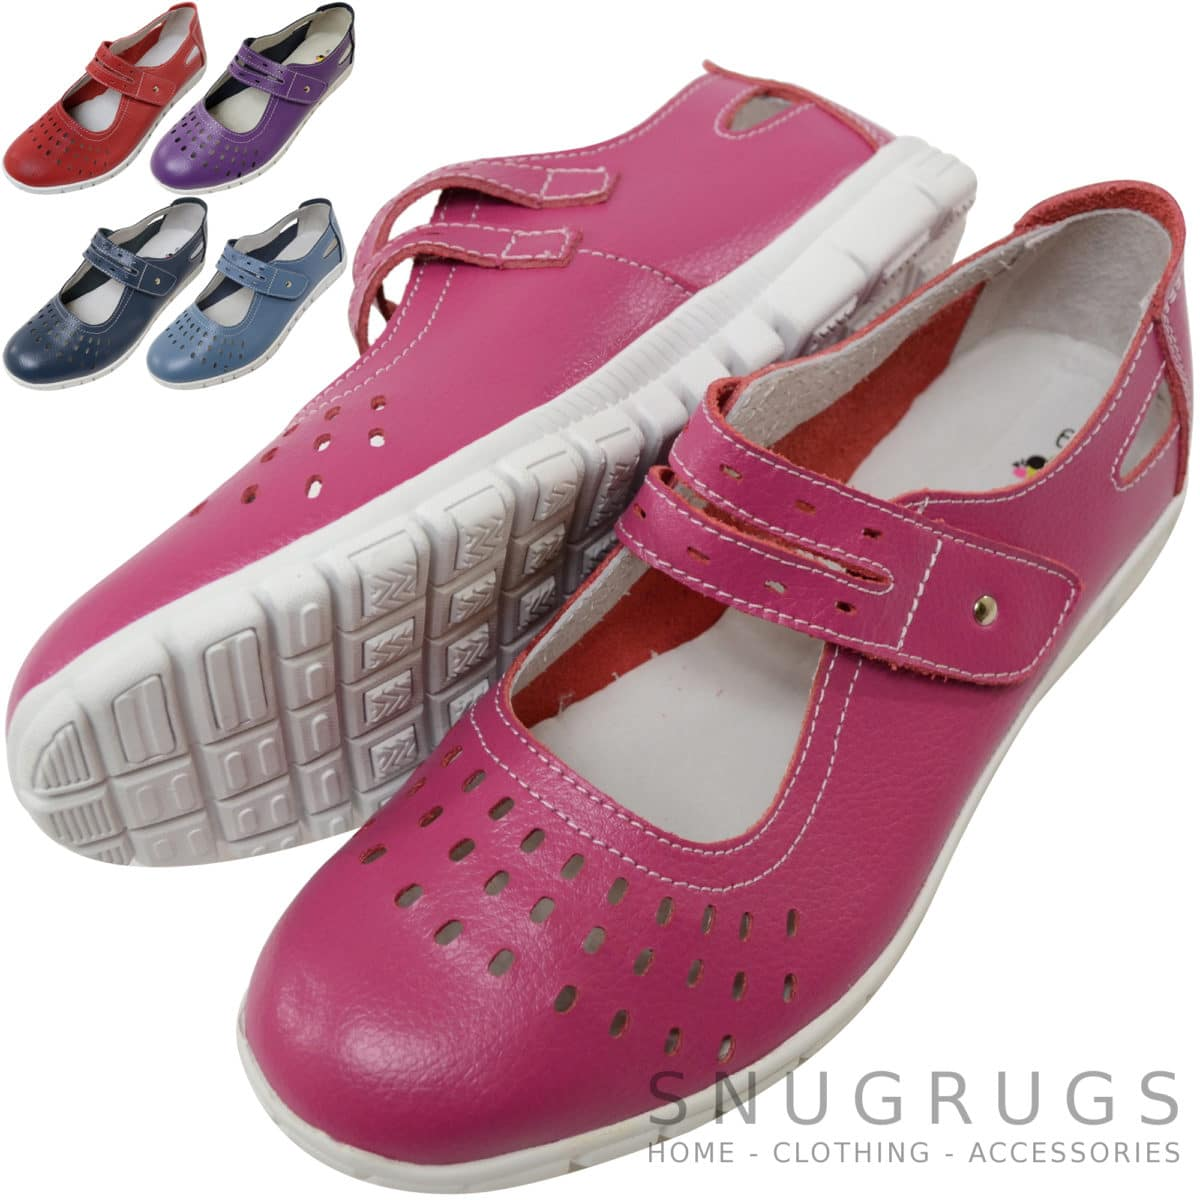 Snugrugs Leather EEE Wide Fitting Casual Shoes / Sandals